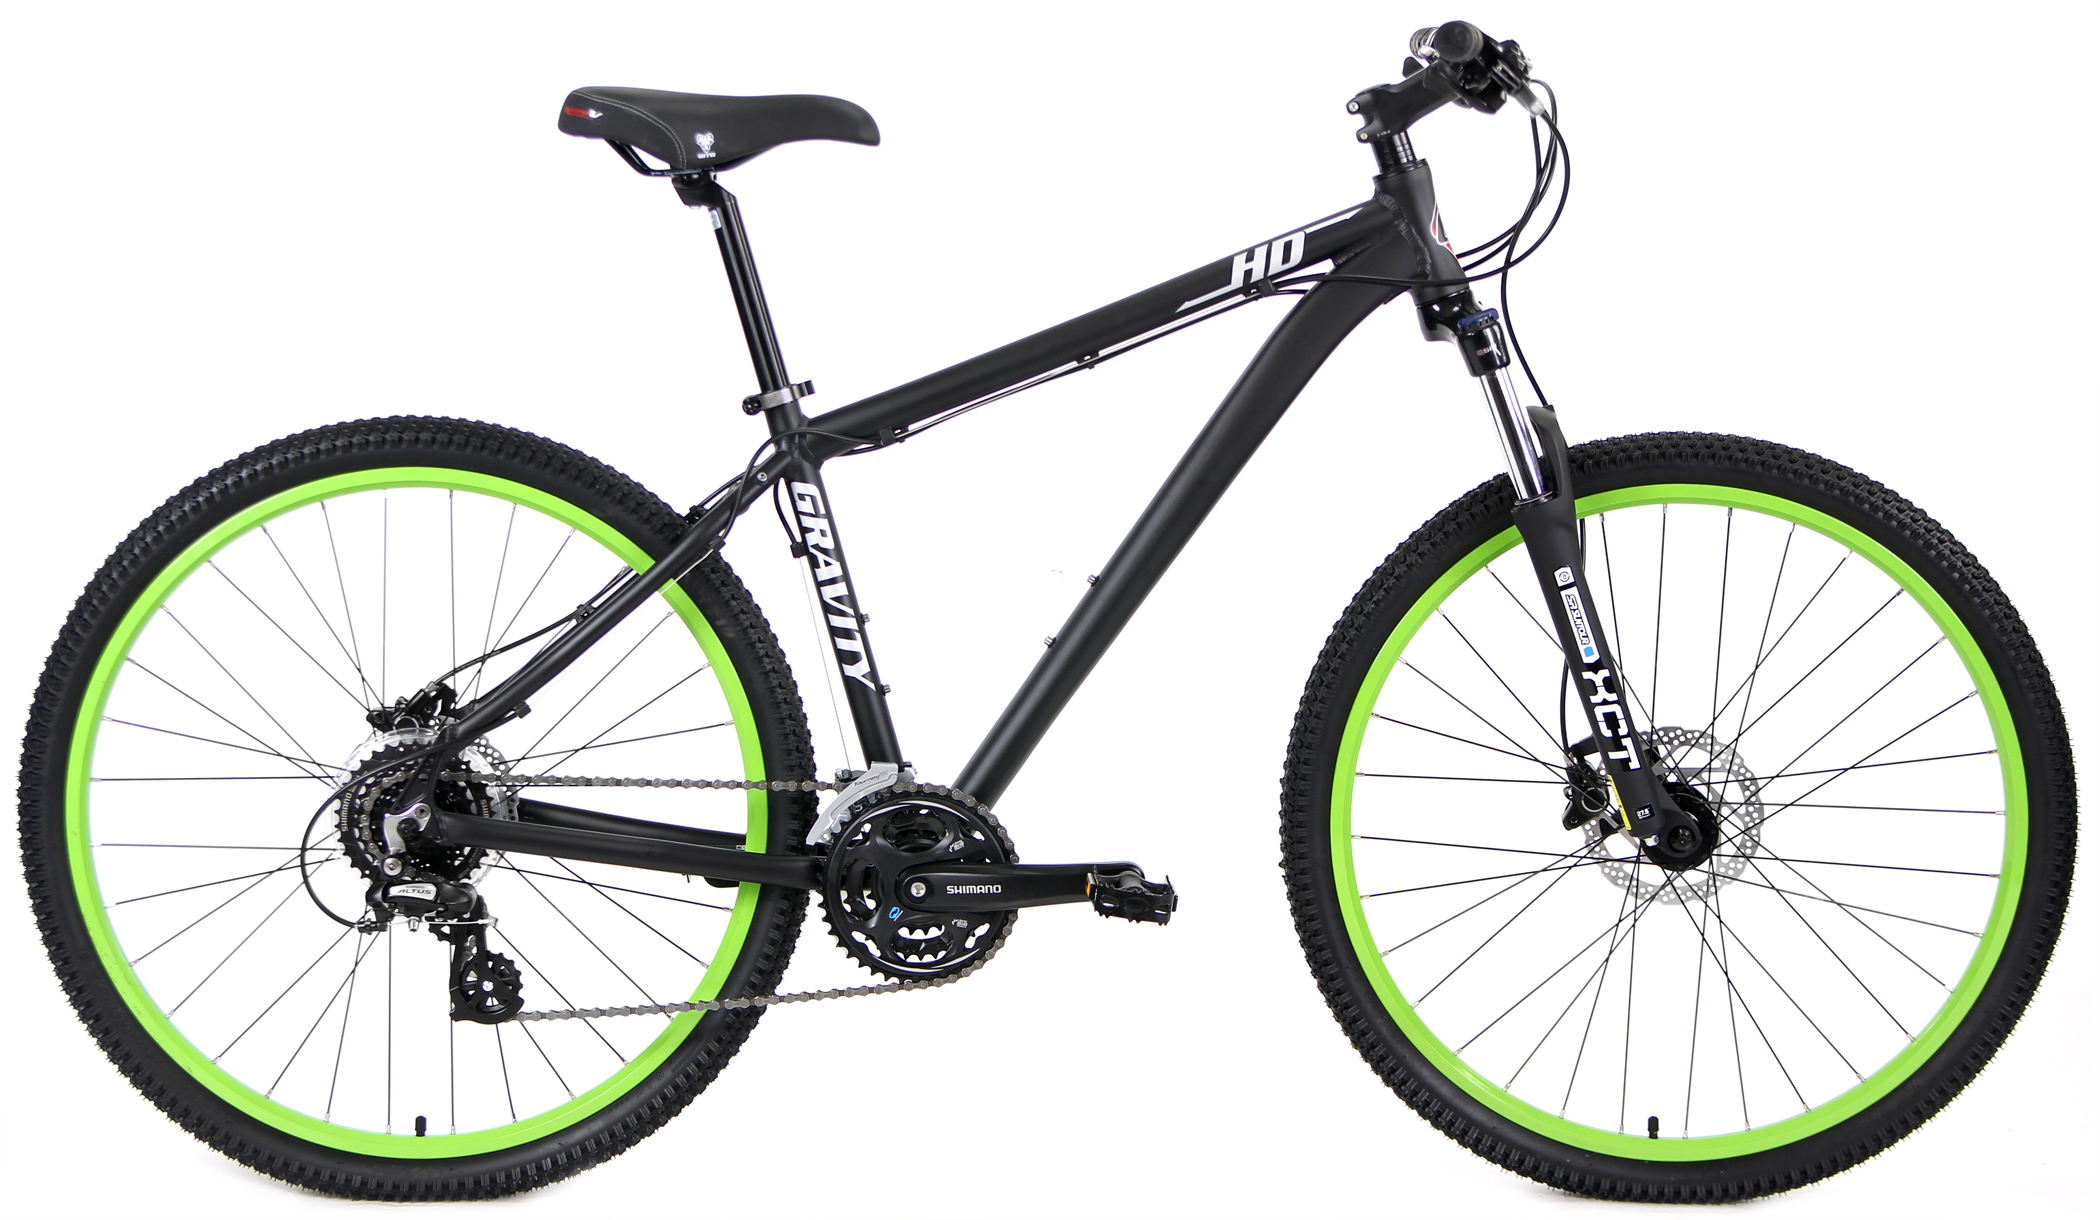 Bikes Gravity HD Elite 27.5 or 29 inch Long Travel Fork Hydraulic Disc Brake Mountain Bike Image